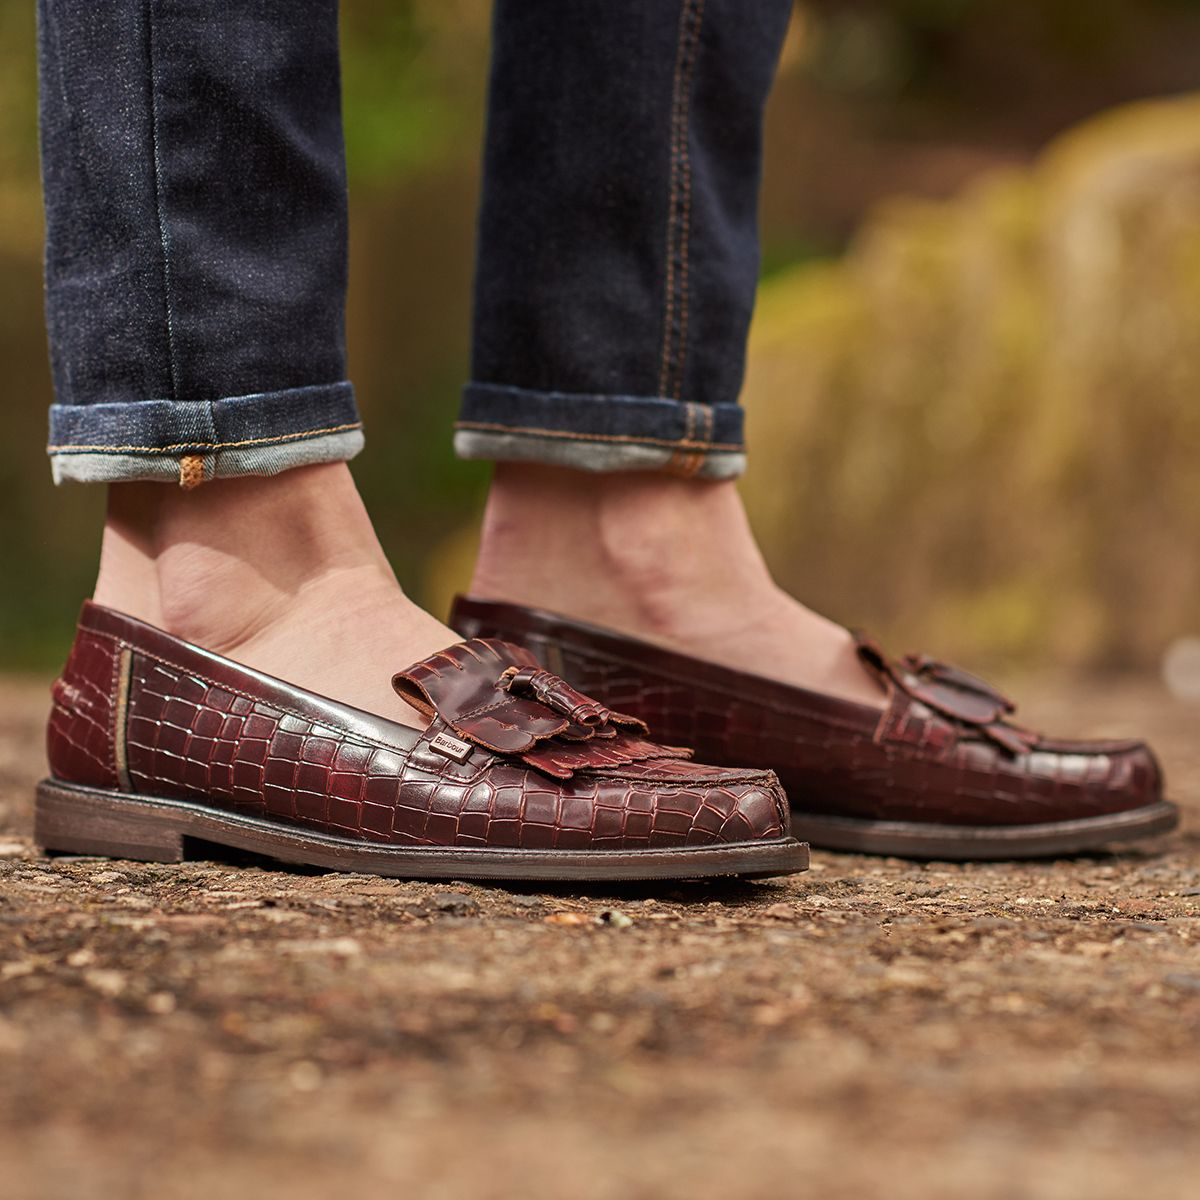 hot sale release date: detailed images The Barbour Olivia Loafer is a timeless style with a leather upper ...